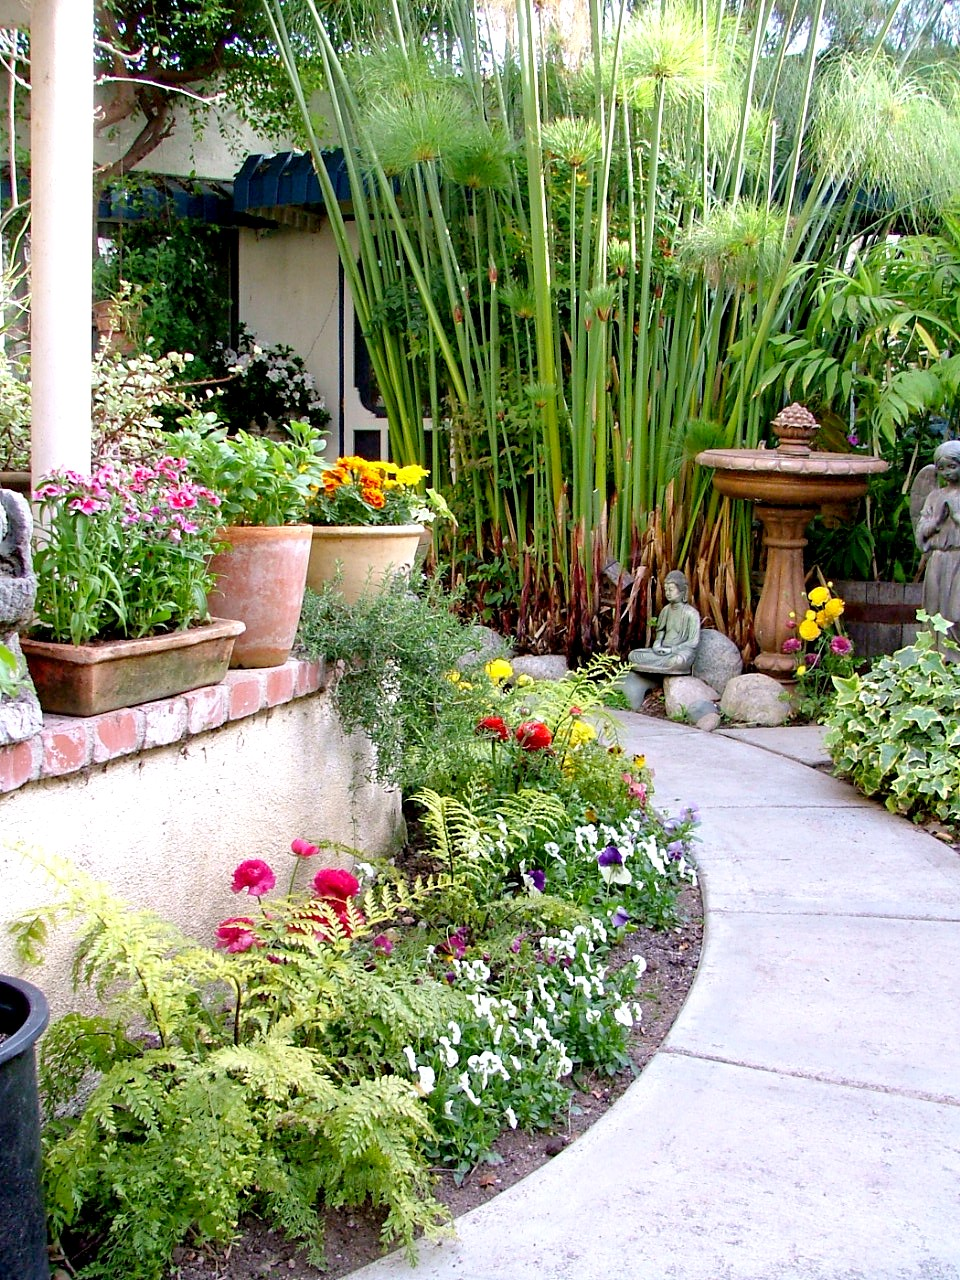 Best landscape ideas landscaping ideas backyard japanese for Outdoor landscaping ideas